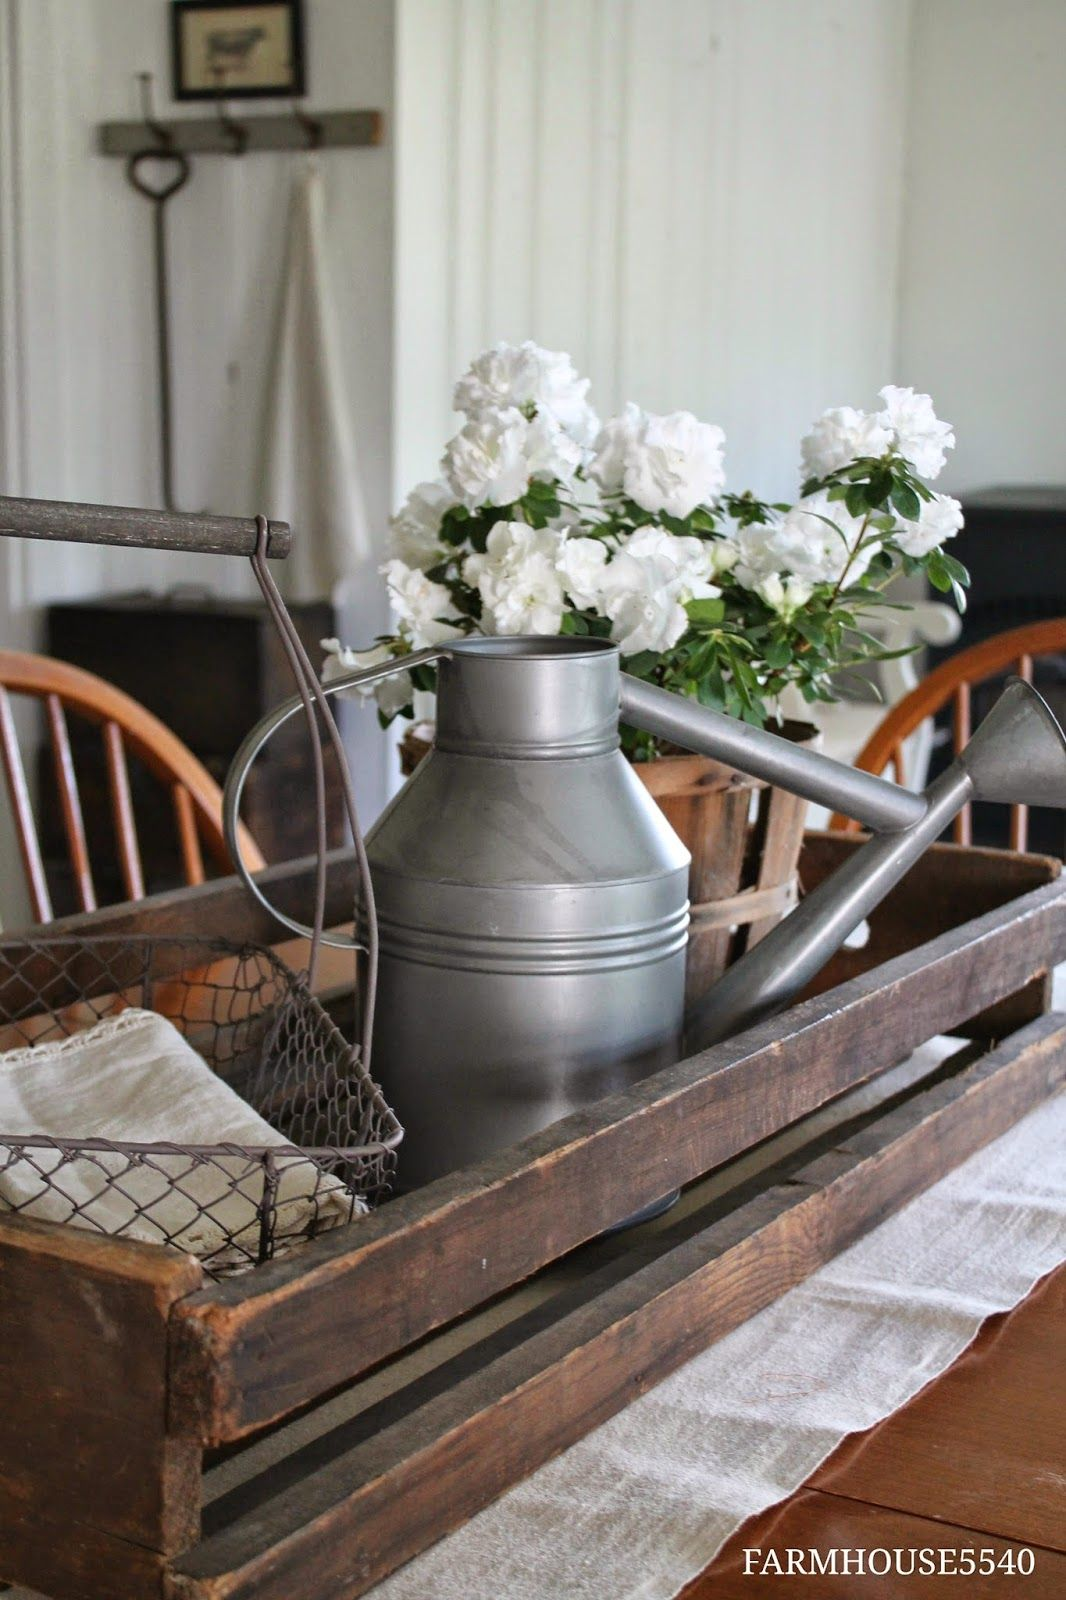 Dining Room Farmhouse5540 Farmhouse Table Centerpieces Farmhouse Centerpiece Dining Room Table Centerpieces